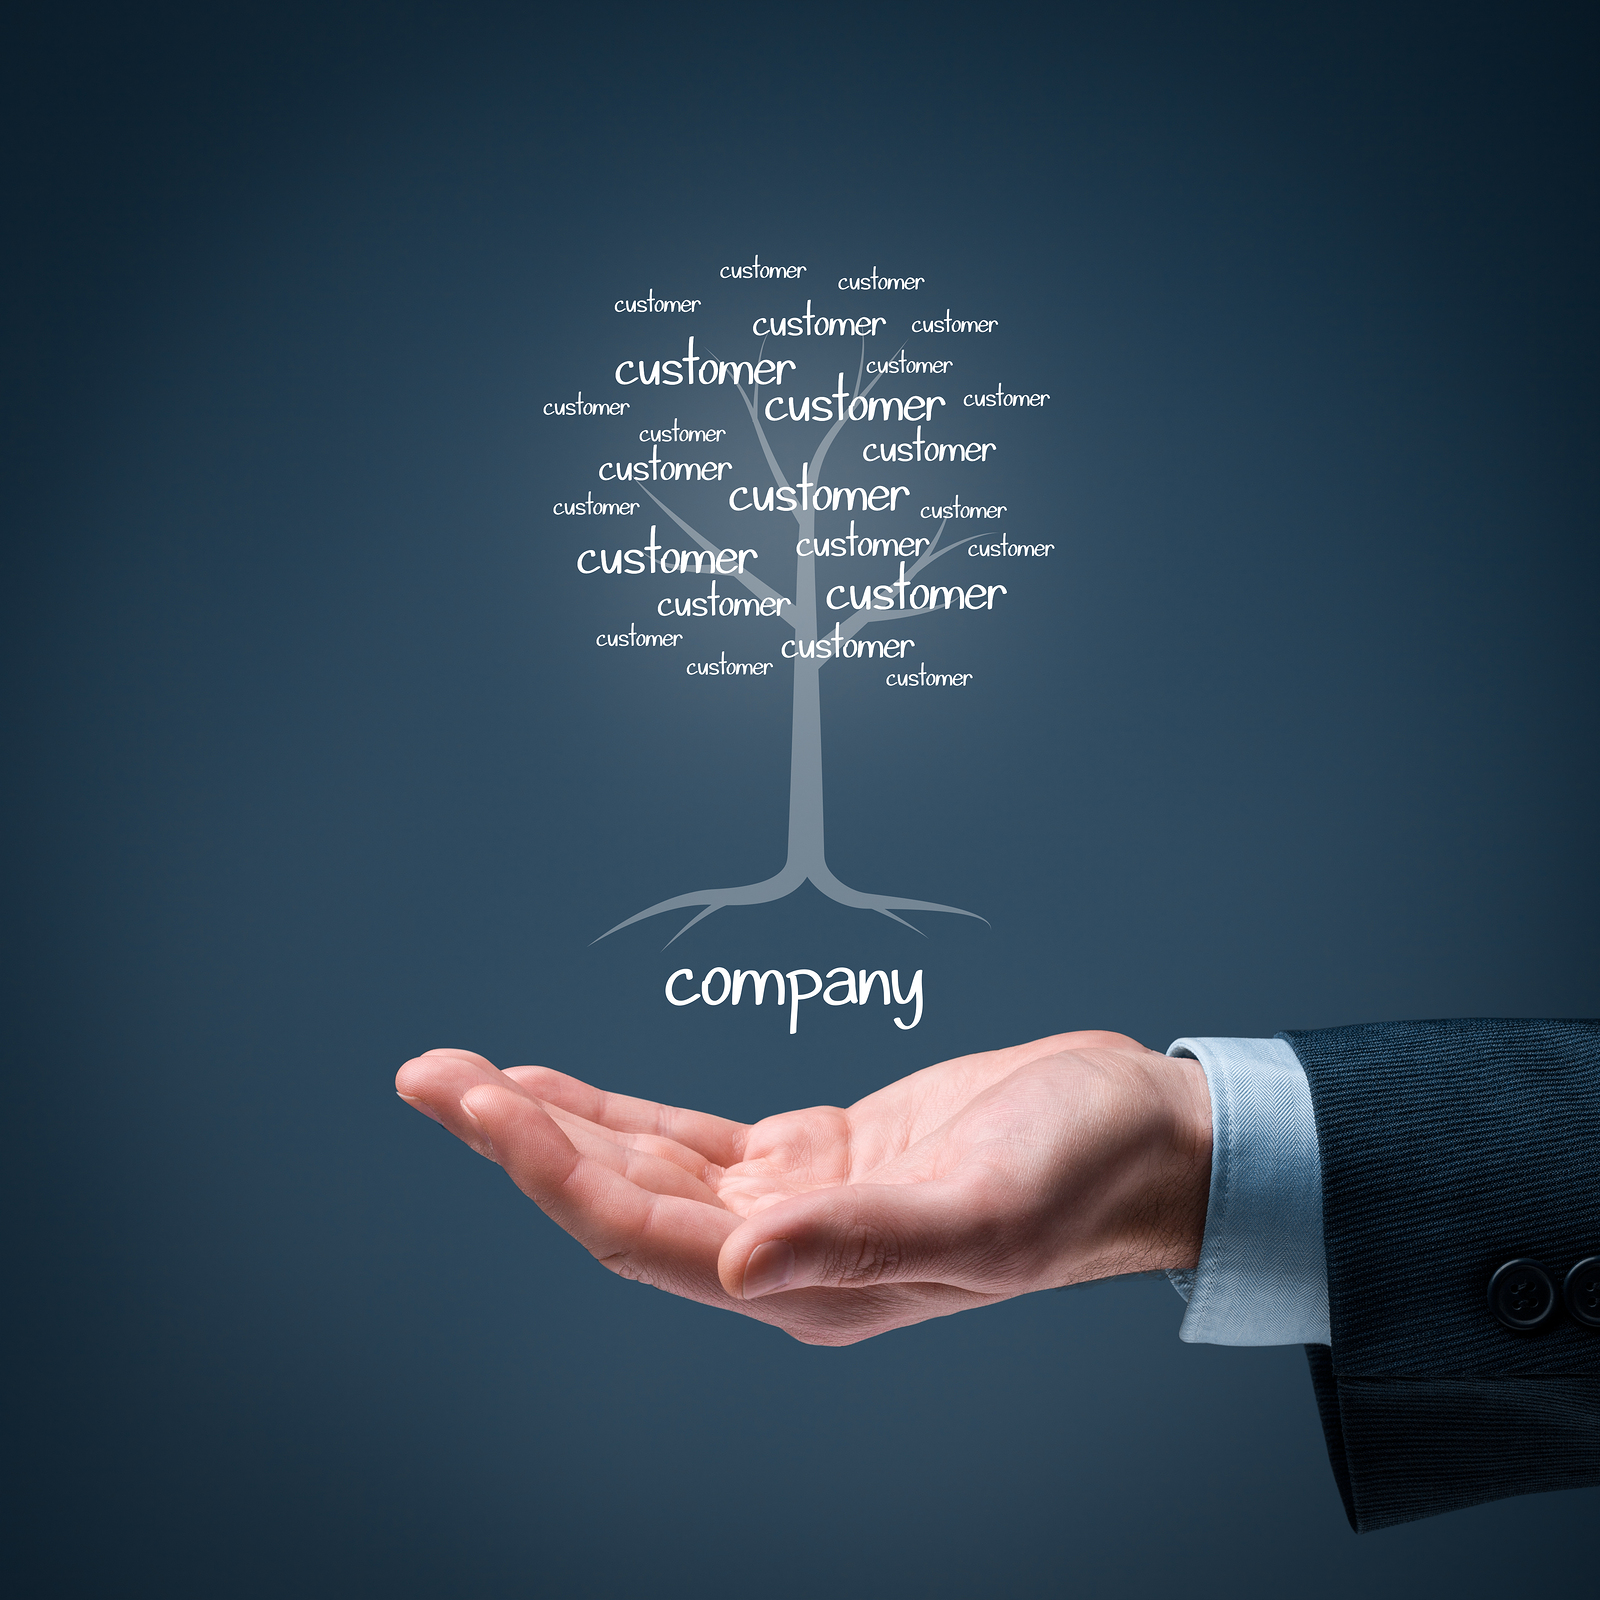 Company and customers metaphor. Company as a root of tree and customers as leaves of tree.